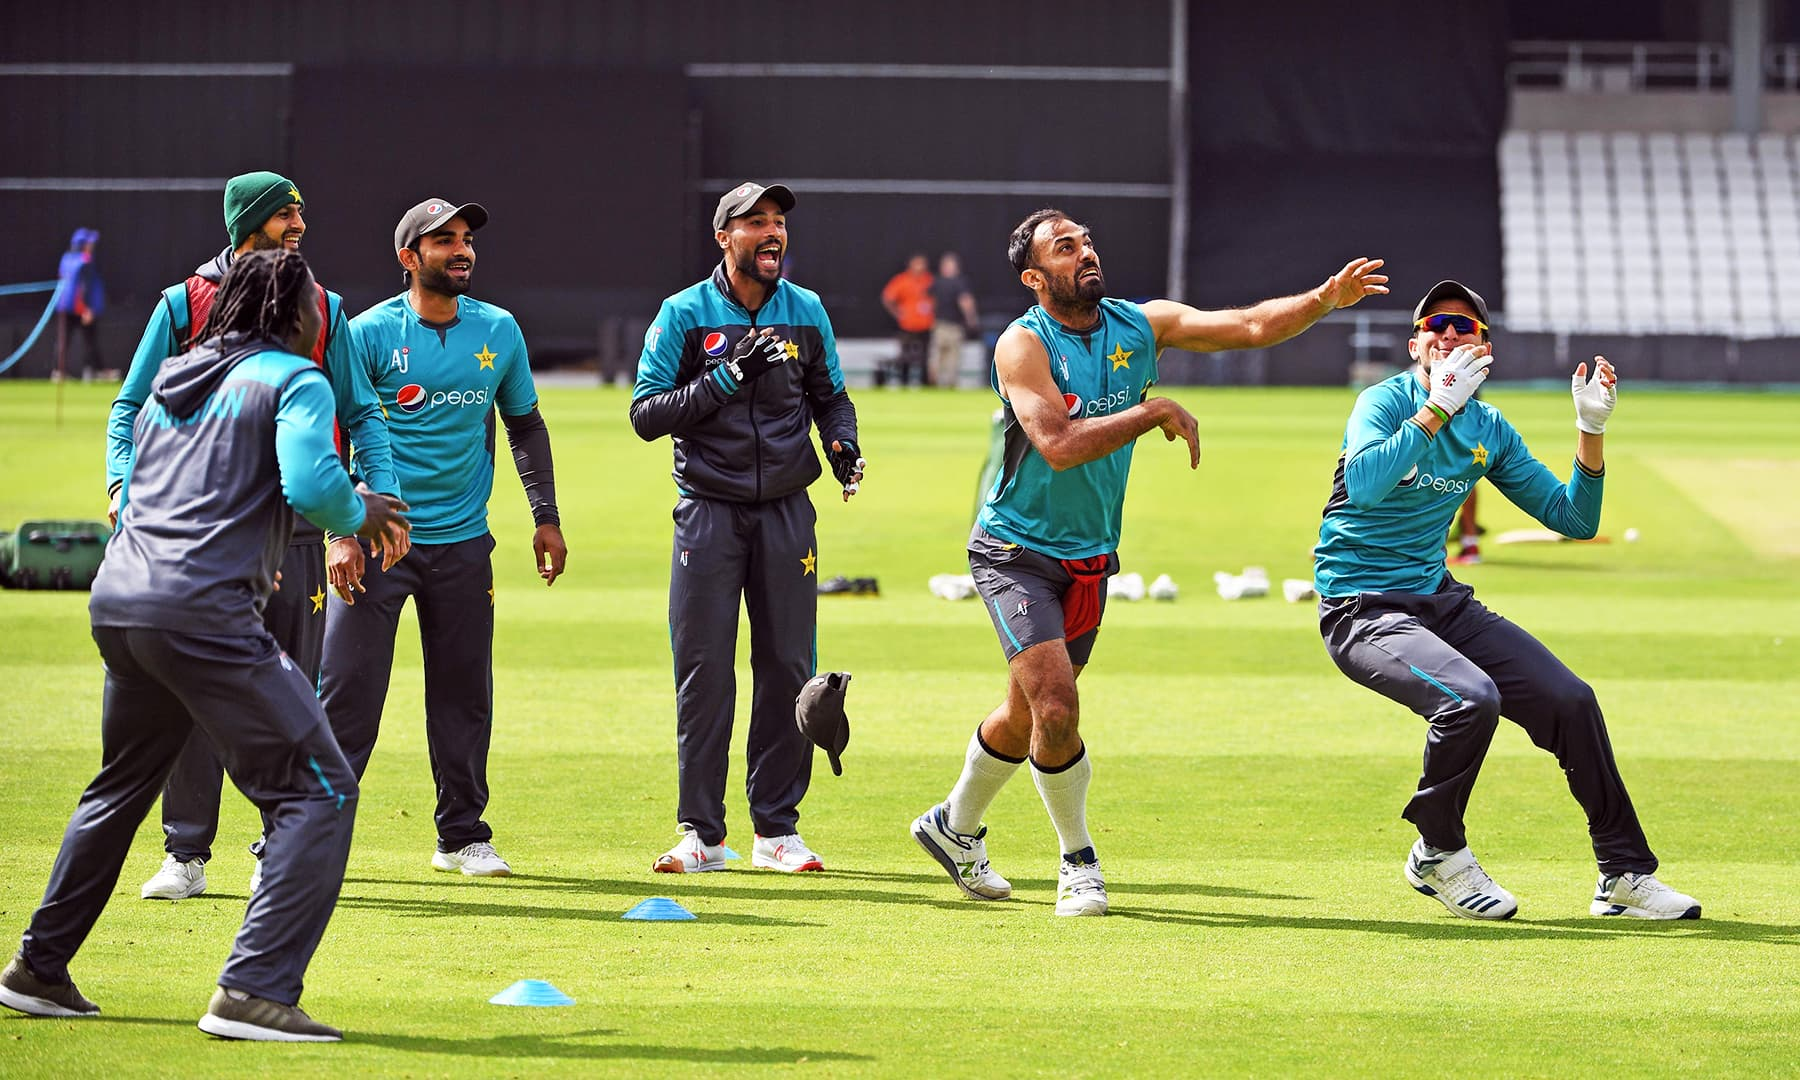 Wahab Riaz (2R) eyes the ball as teammates Shoaib Malik, Asif Ali, Mohammad Amir and Shaheen Shah Afridi look on. — AFP